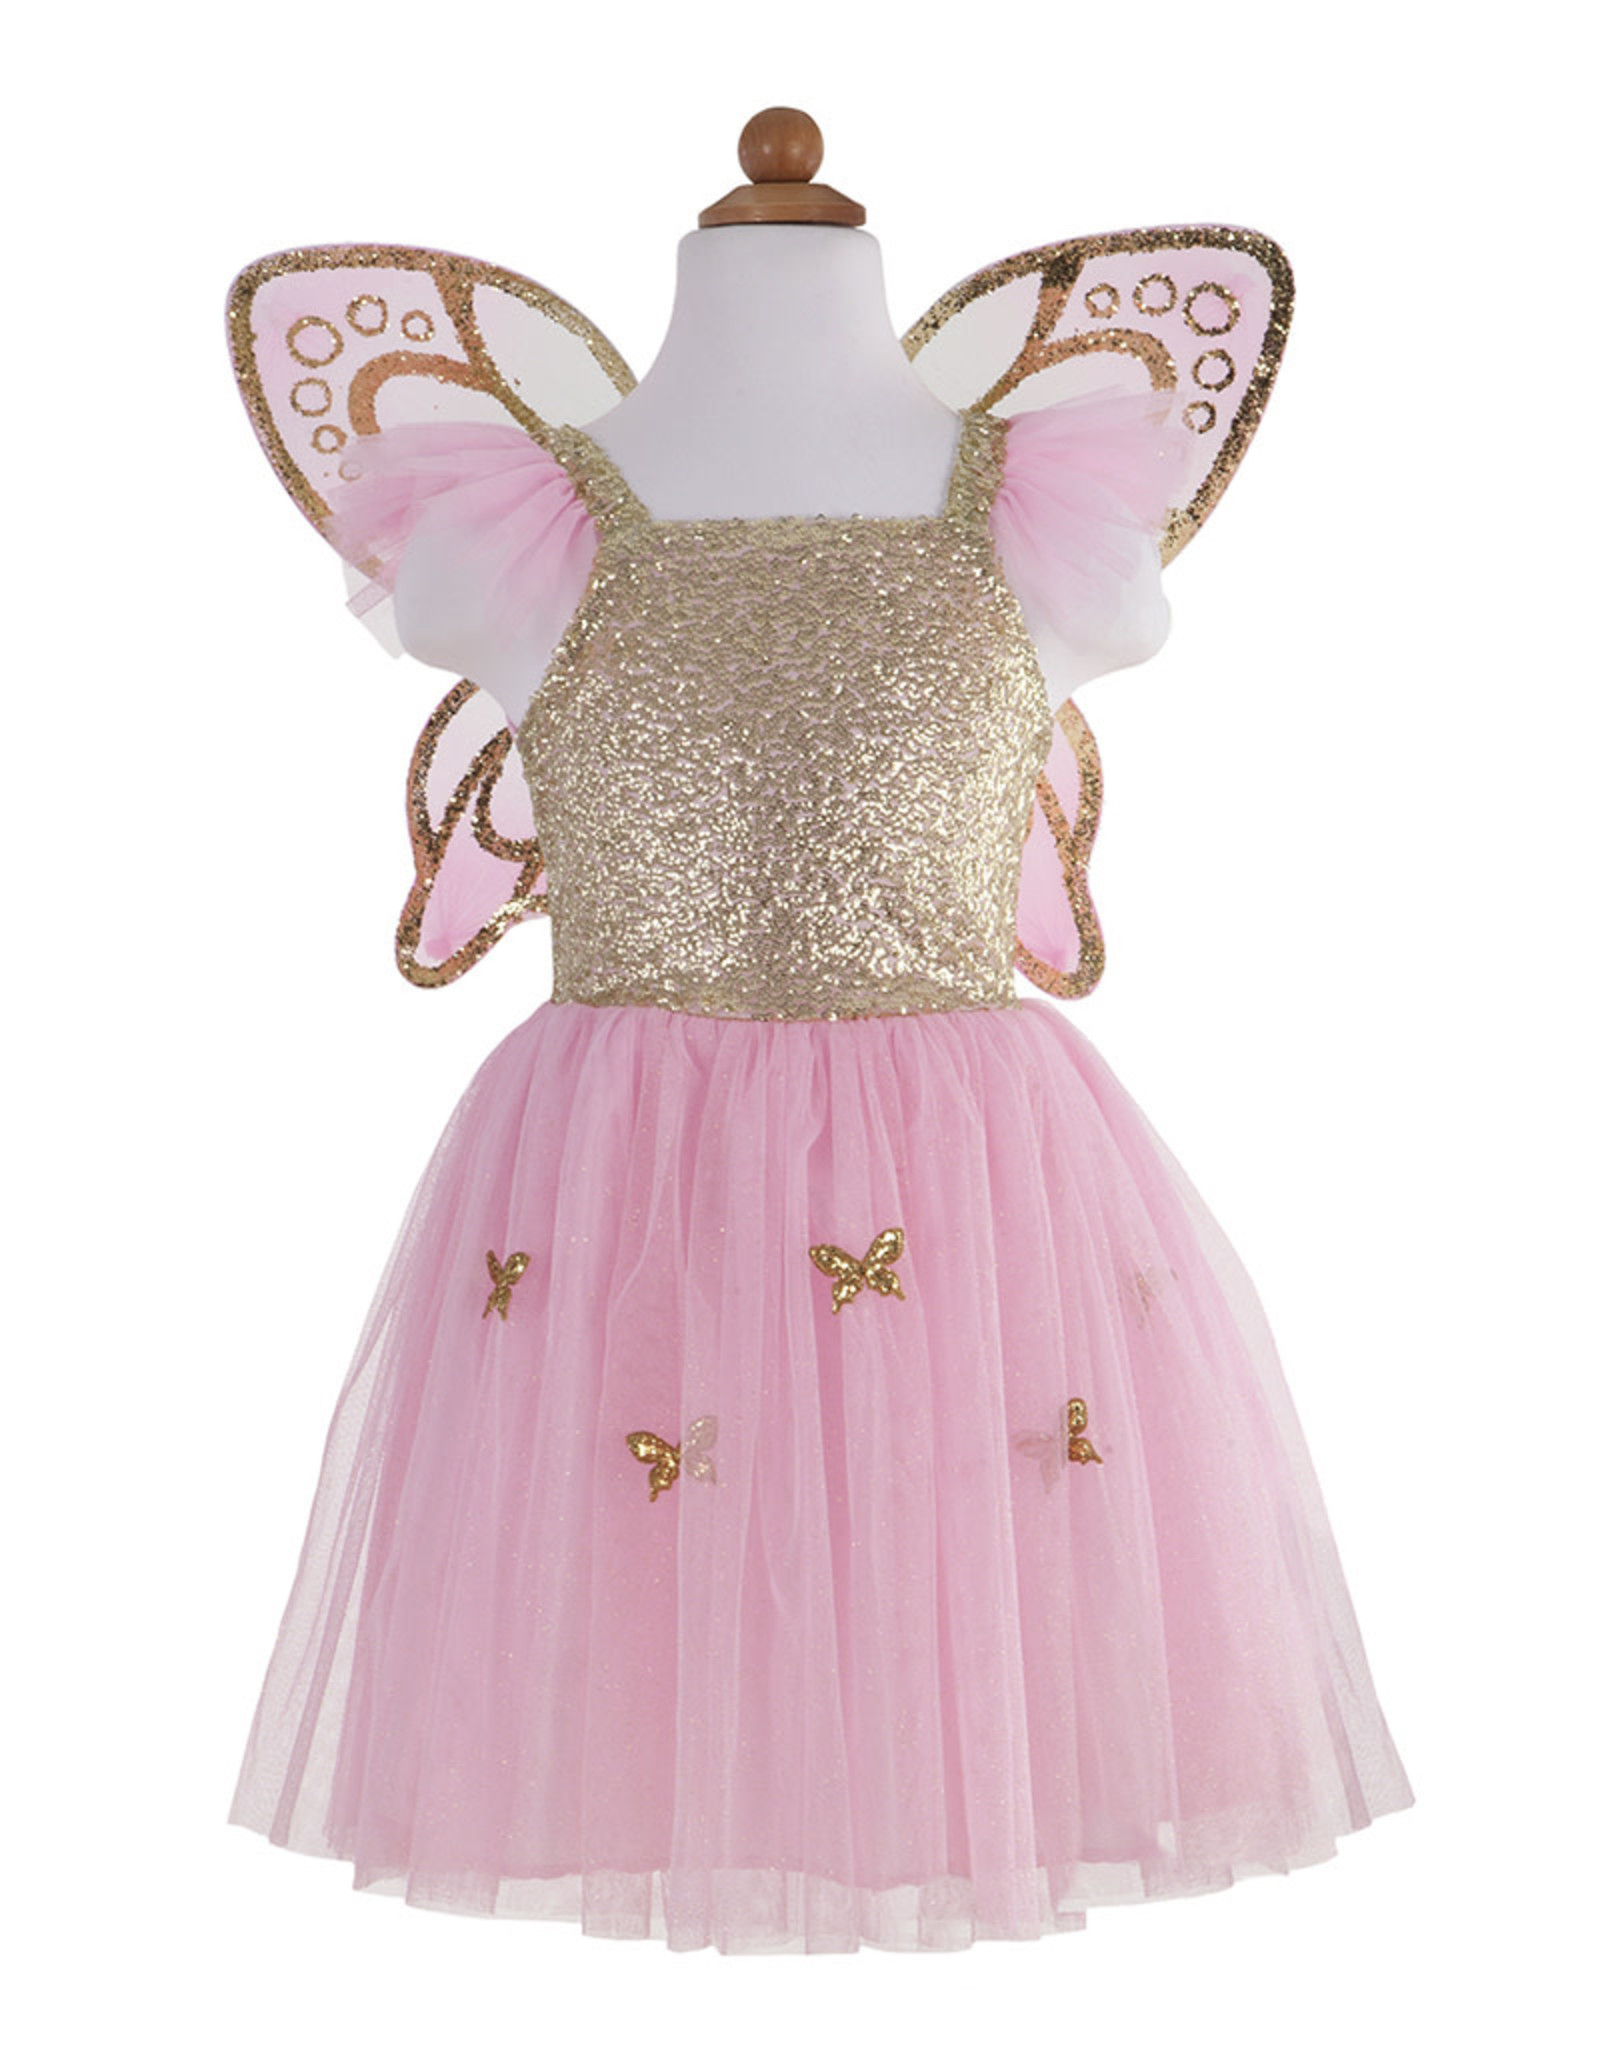 Great Pretenders Gold Butterfly Dress with Wings, Size 5-6